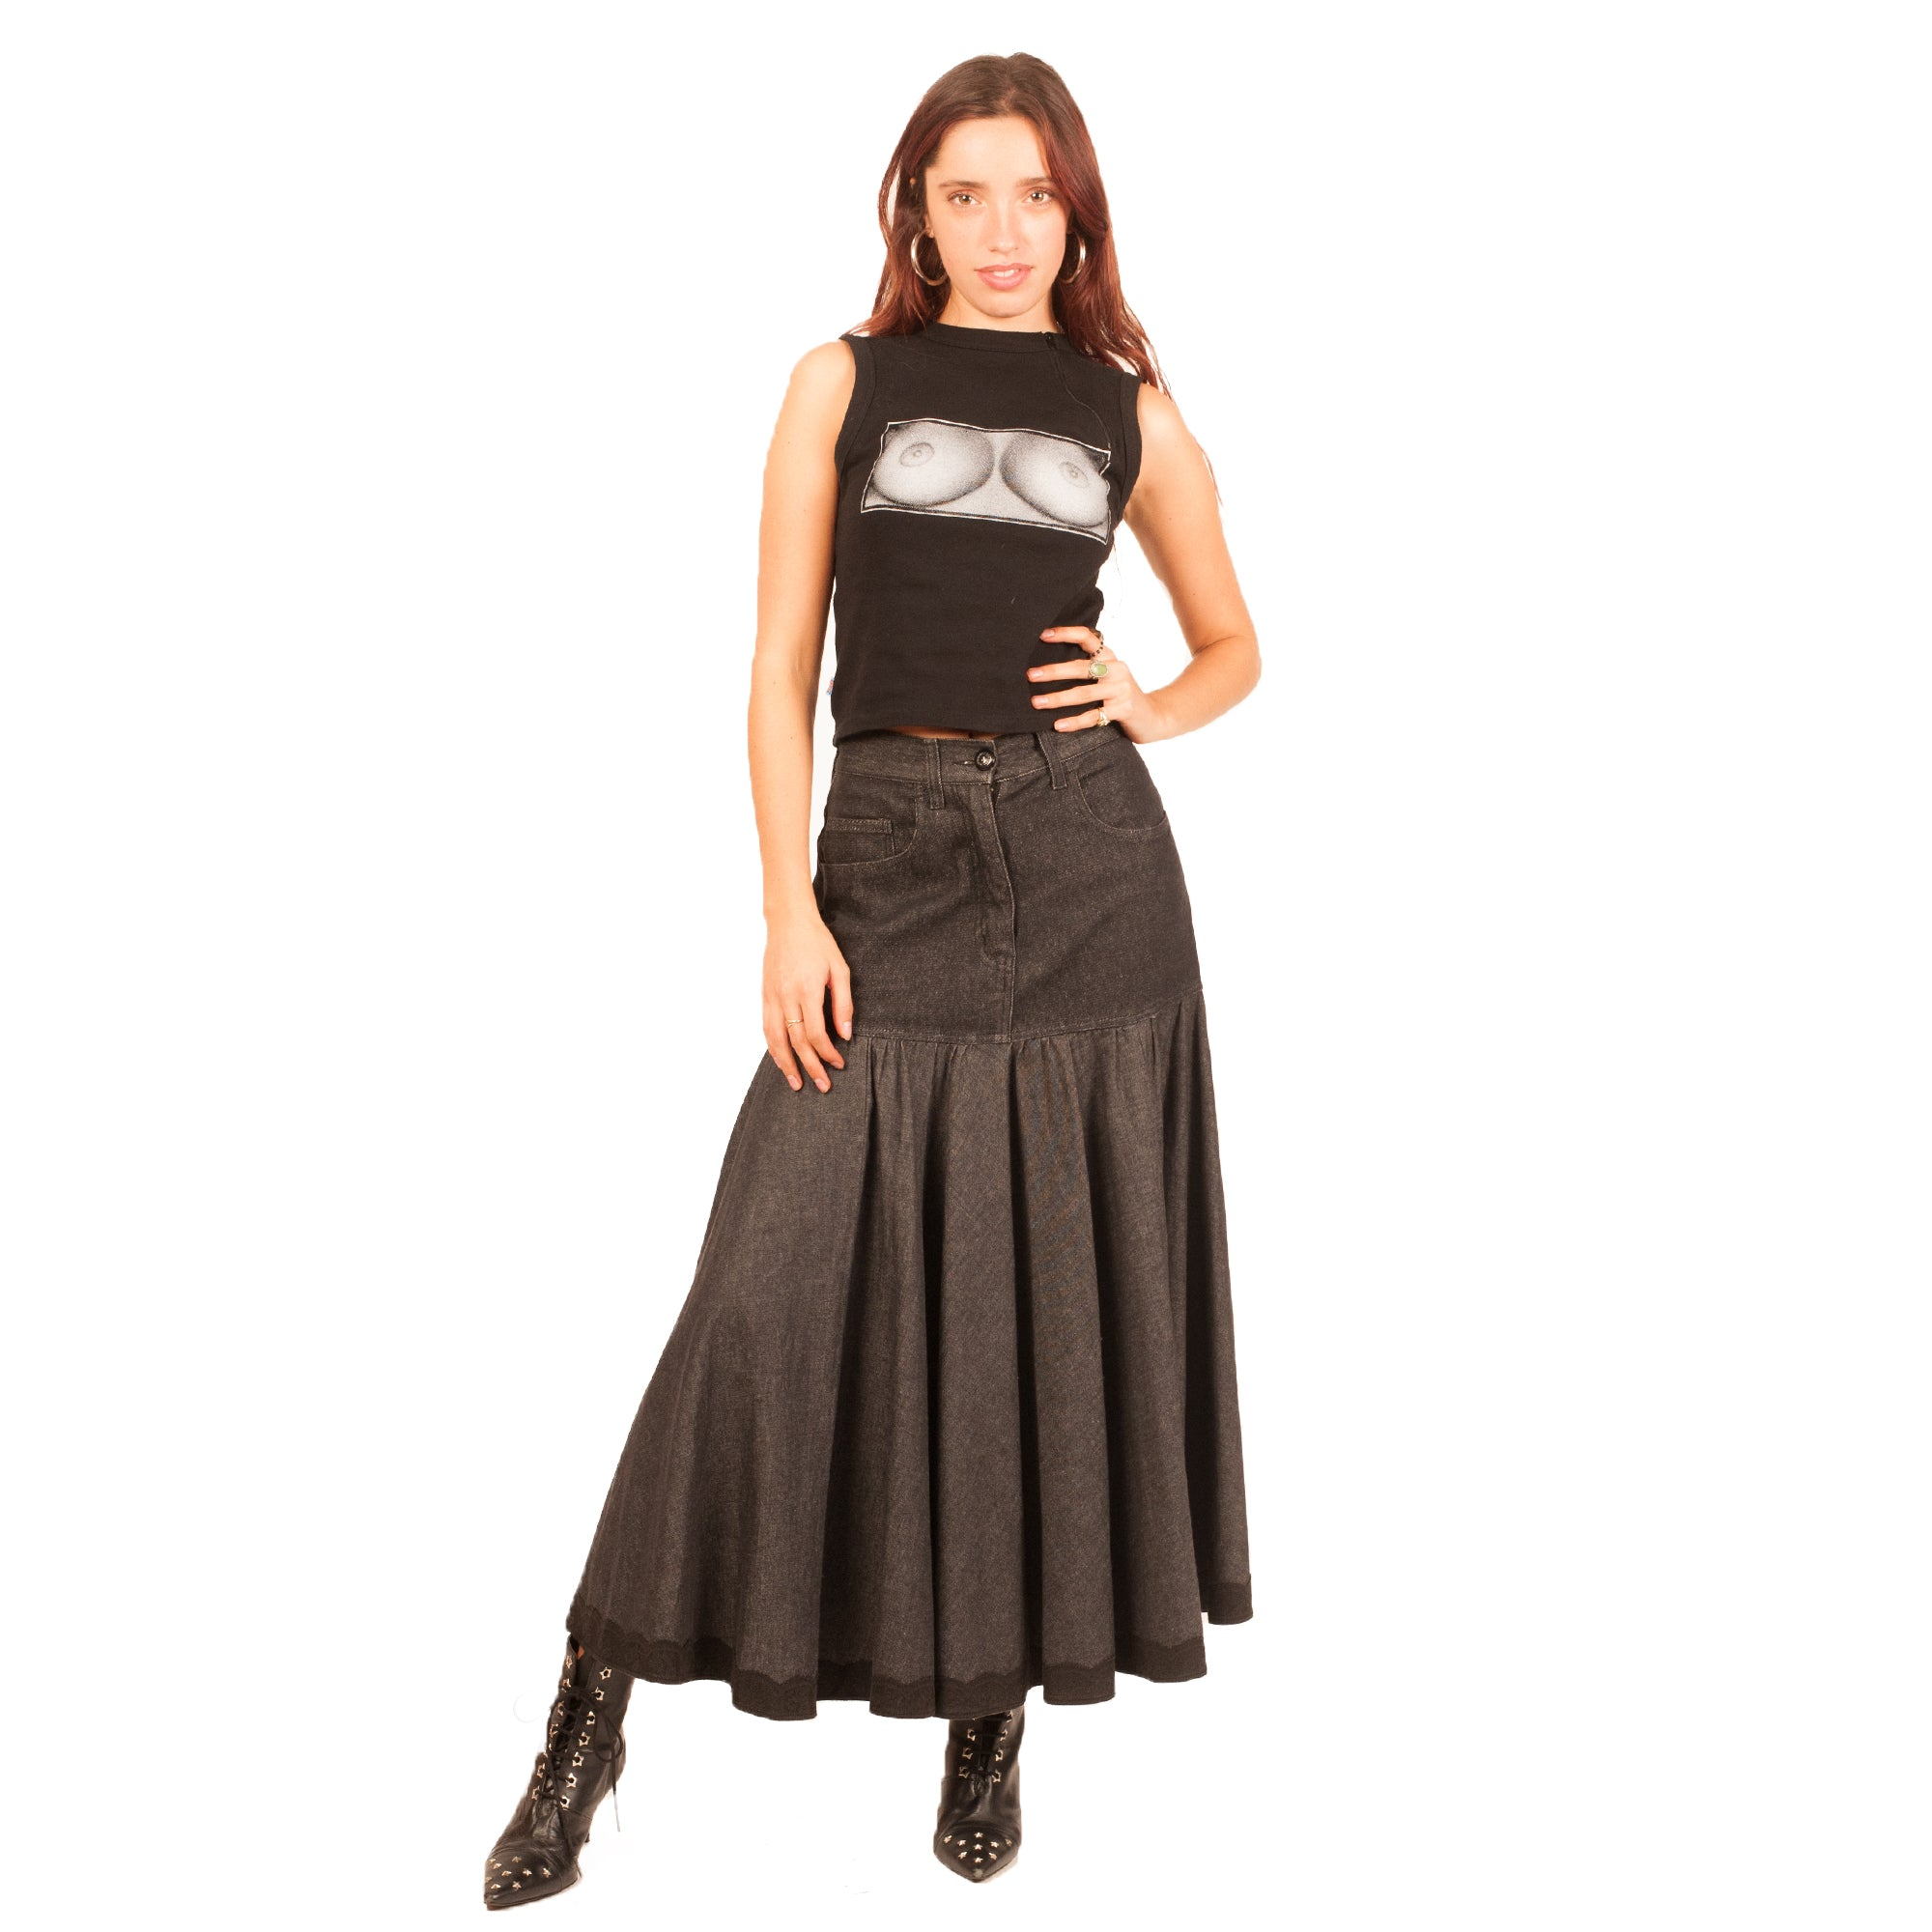 Moschino Denim Skirt (Black) UK 10.